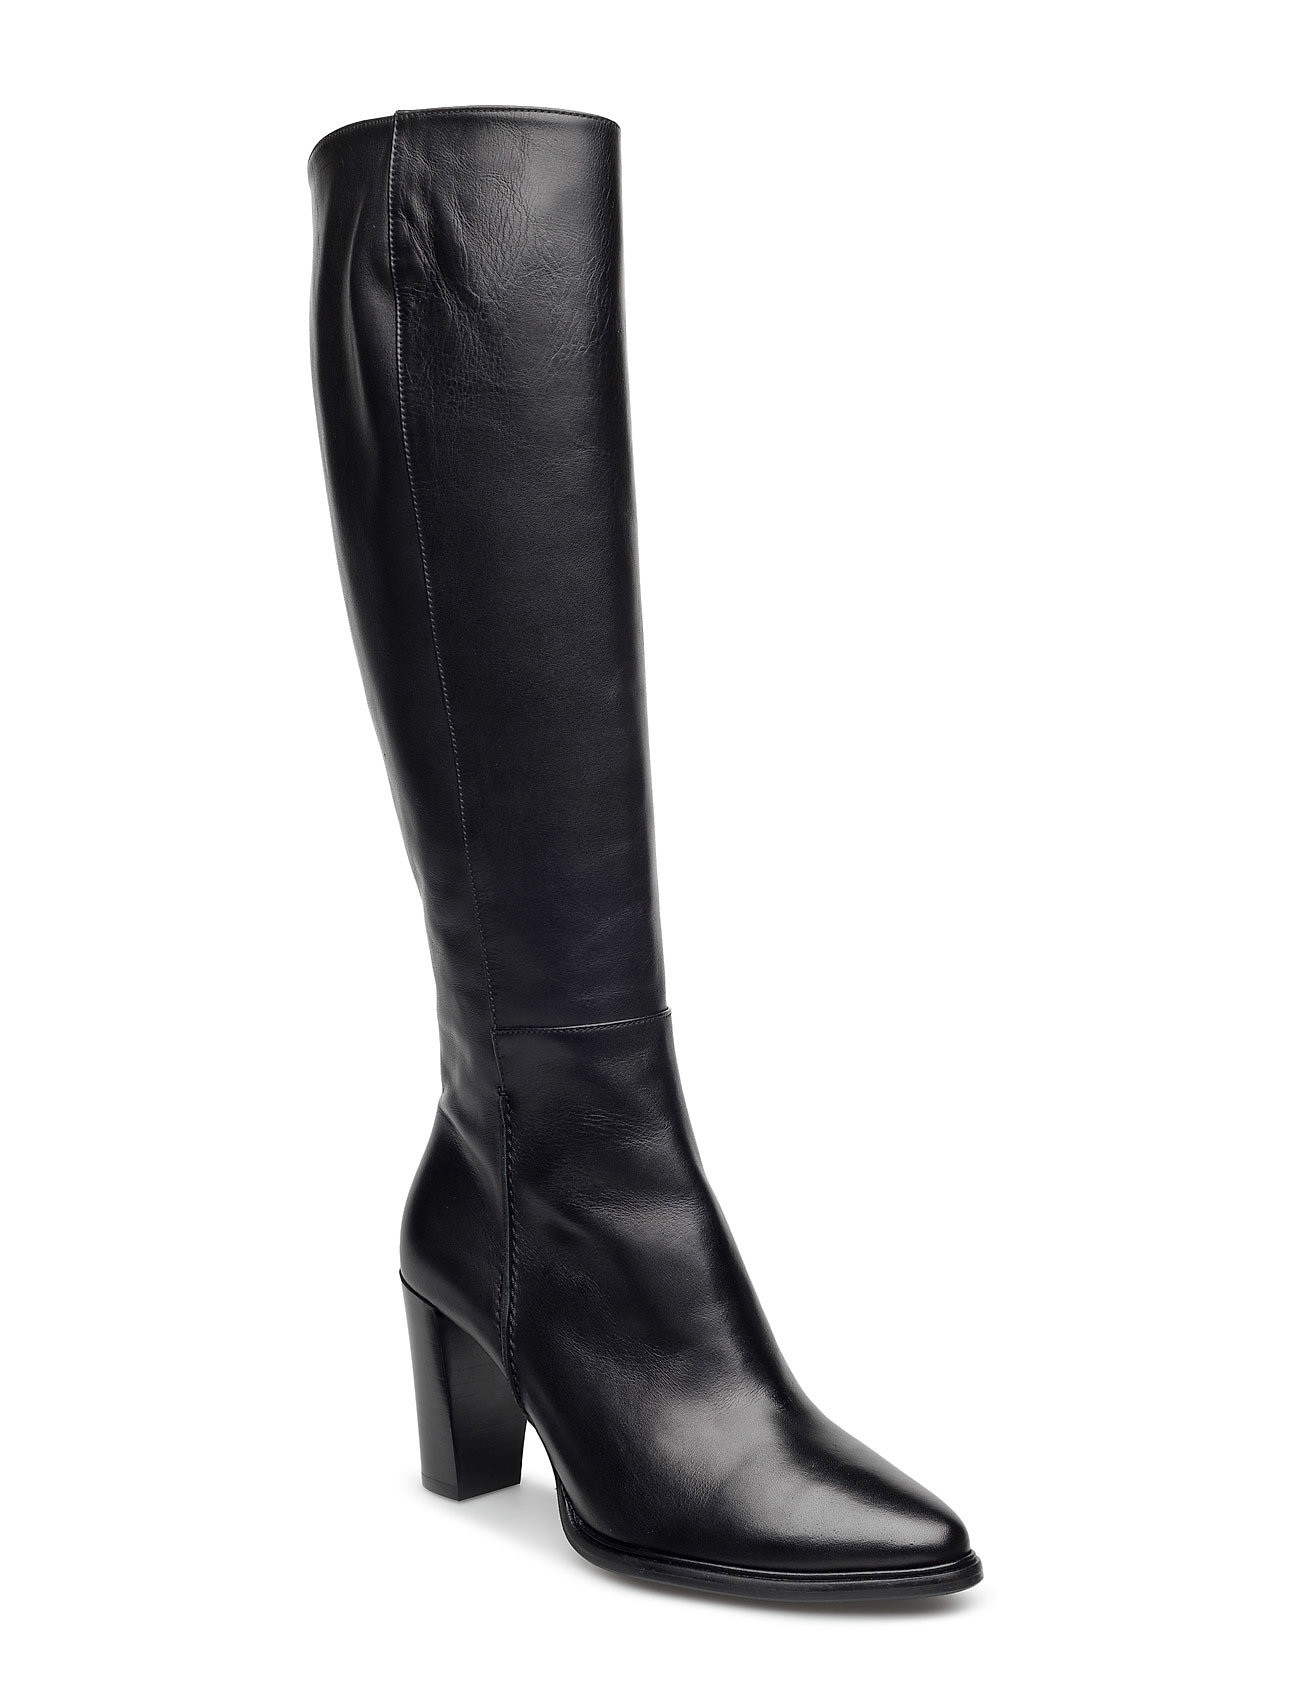 Long Boots 7793 Lange Støvler Sort Billi Bi